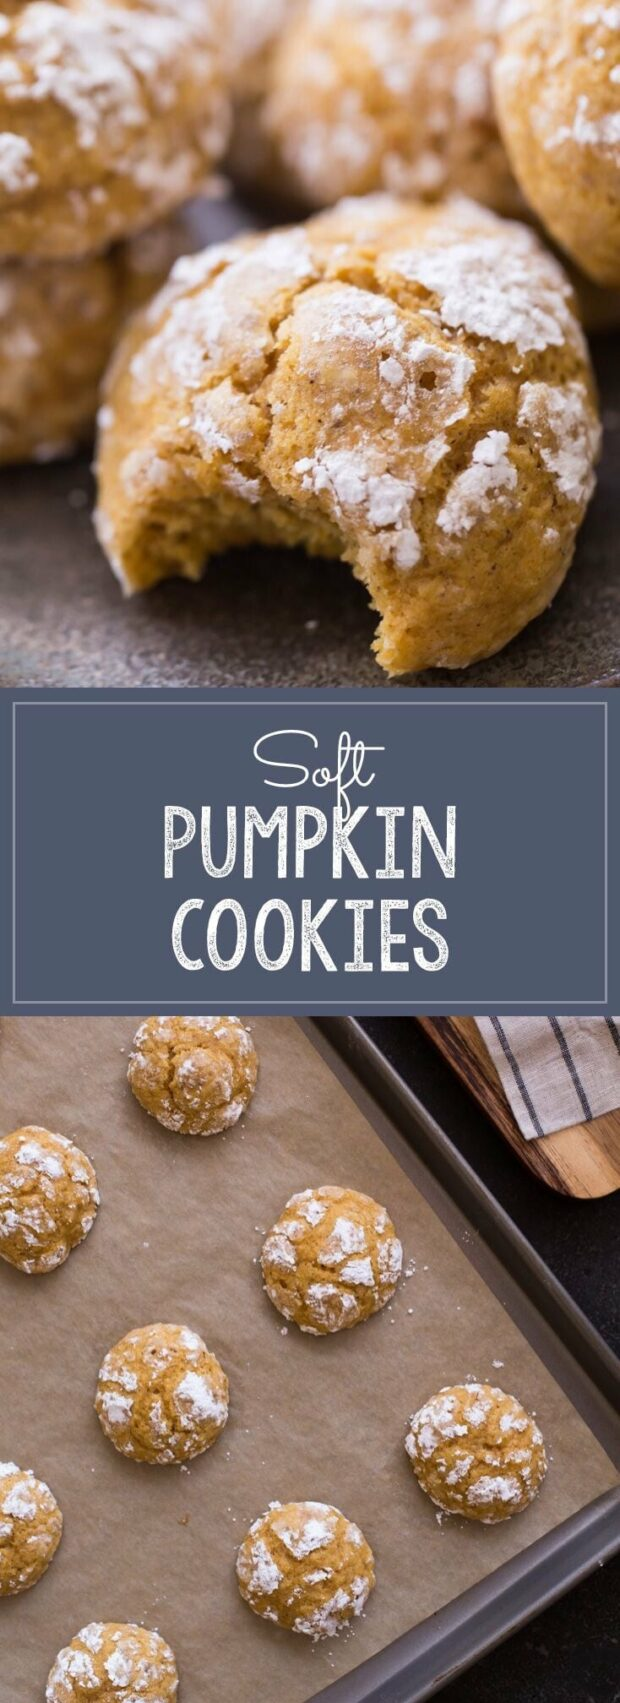 15 Pumpkin Spice Recipes for Fall (Part 3)